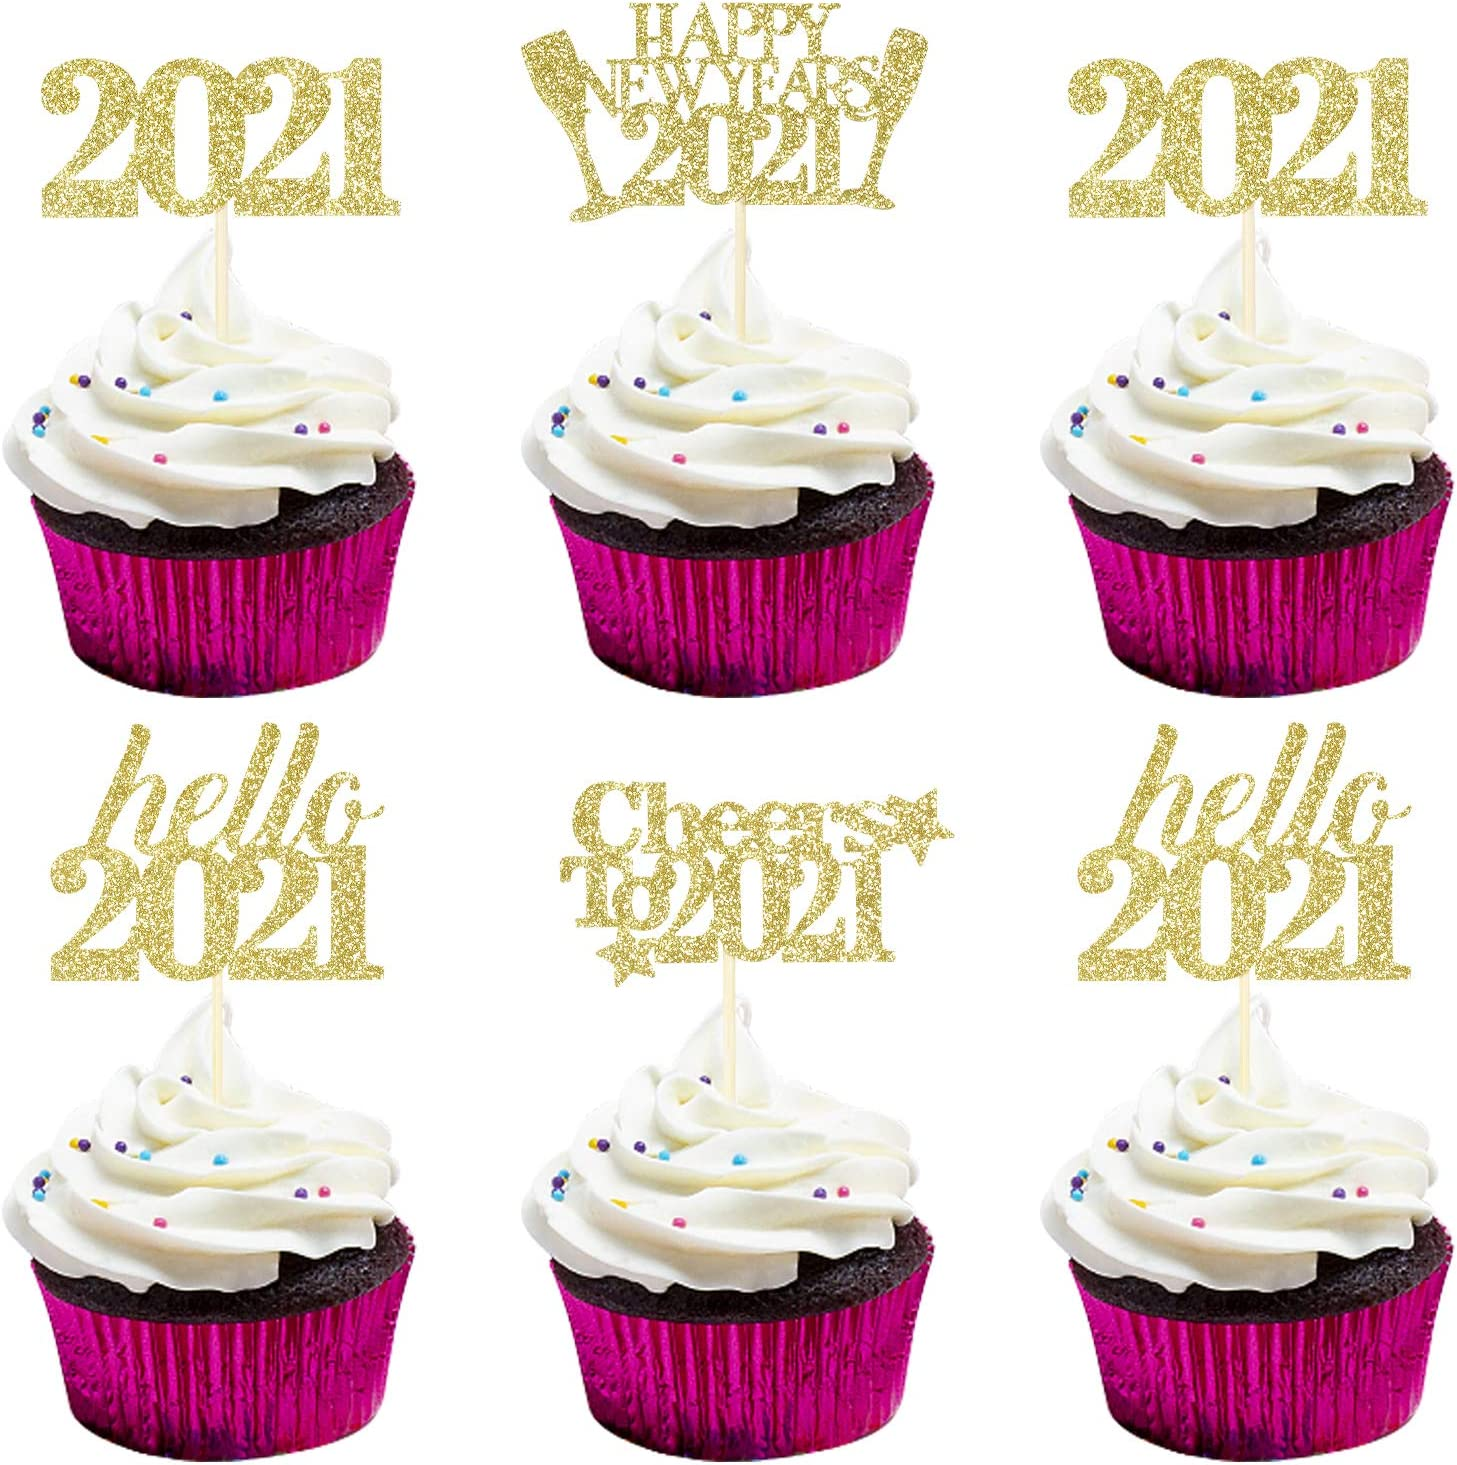 Hello 2021 Happy New Year 2021 Cheers to 2021 Cupcake Toppers Cake Food Picks - New Years Eve Party Supplies 2021,Happy New Year Party Decorations 2021